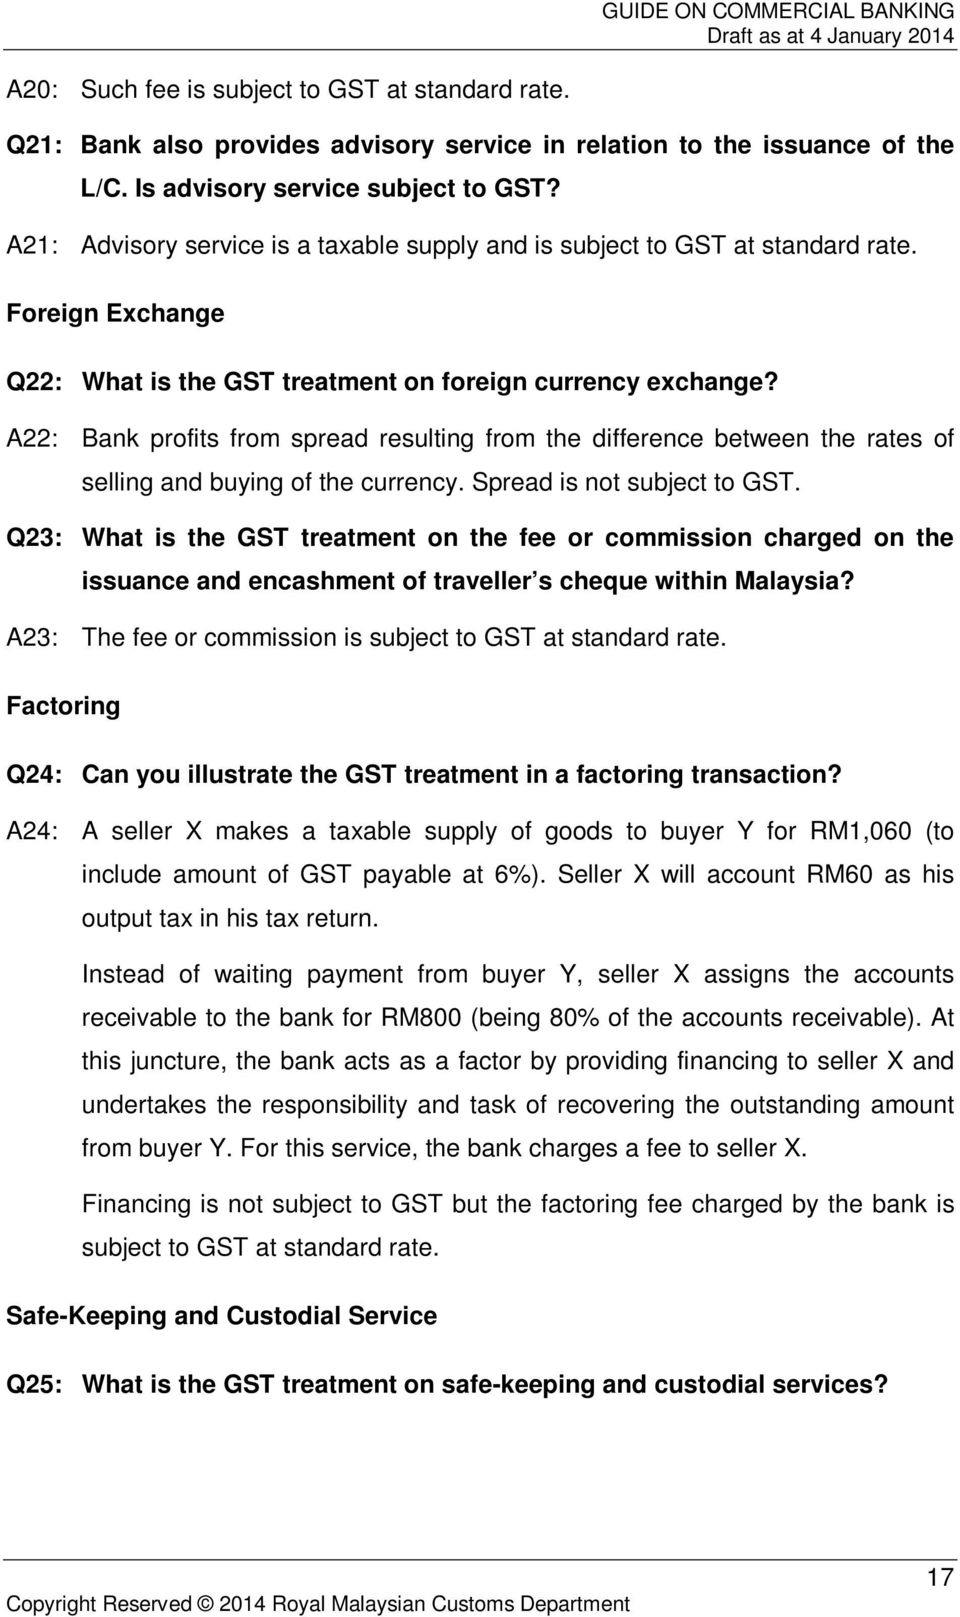 A22: Bank profits from spread resulting from the difference between the rates of selling and buying of the currency. Spread is not subject to GST.